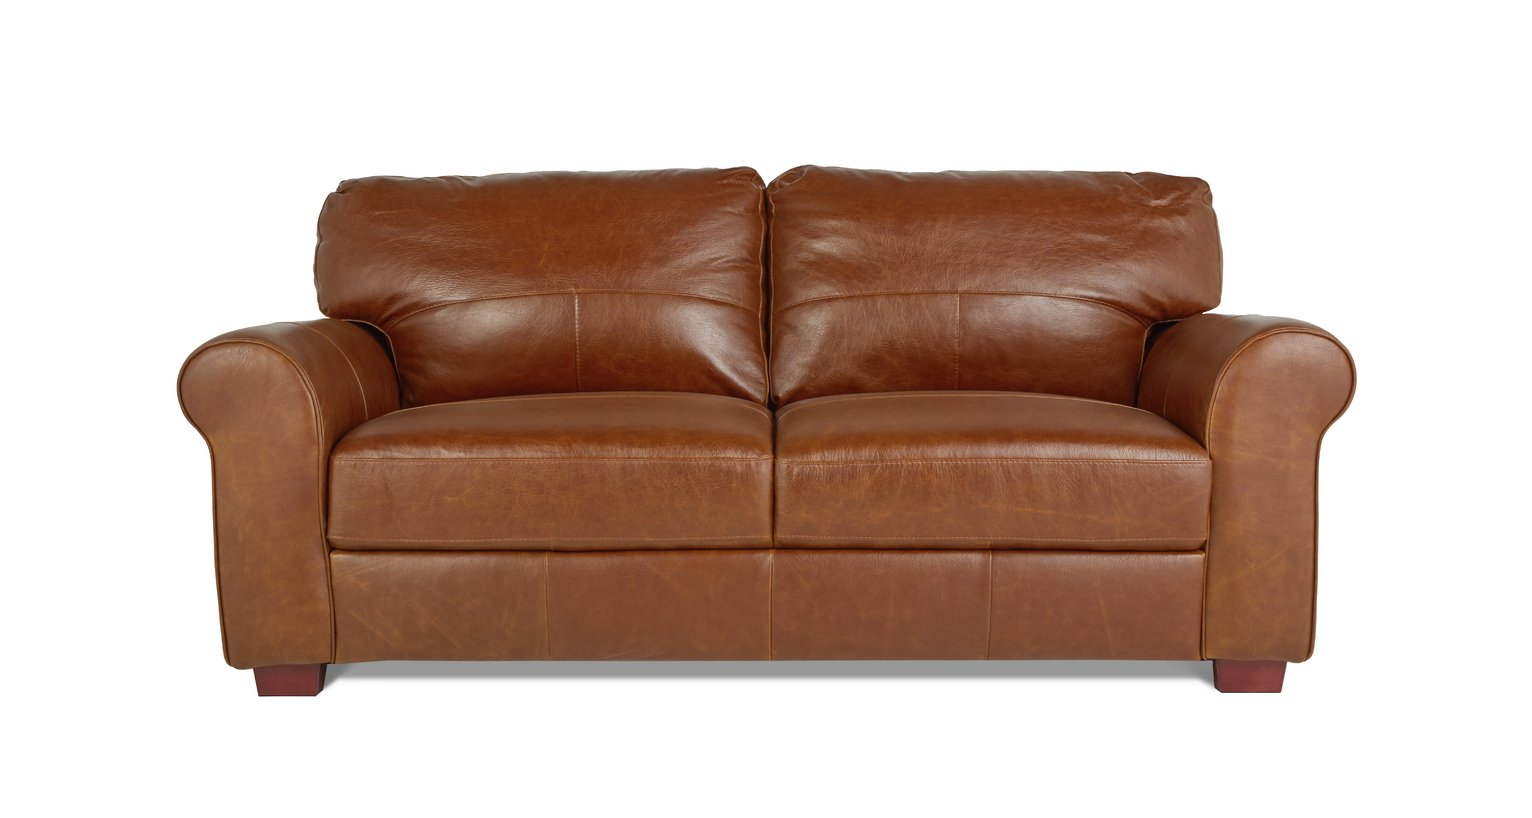 buy heart of house salisbury 3 seater leather sofa tan at argoscouk your online shop for sofas living room furniture home and garden